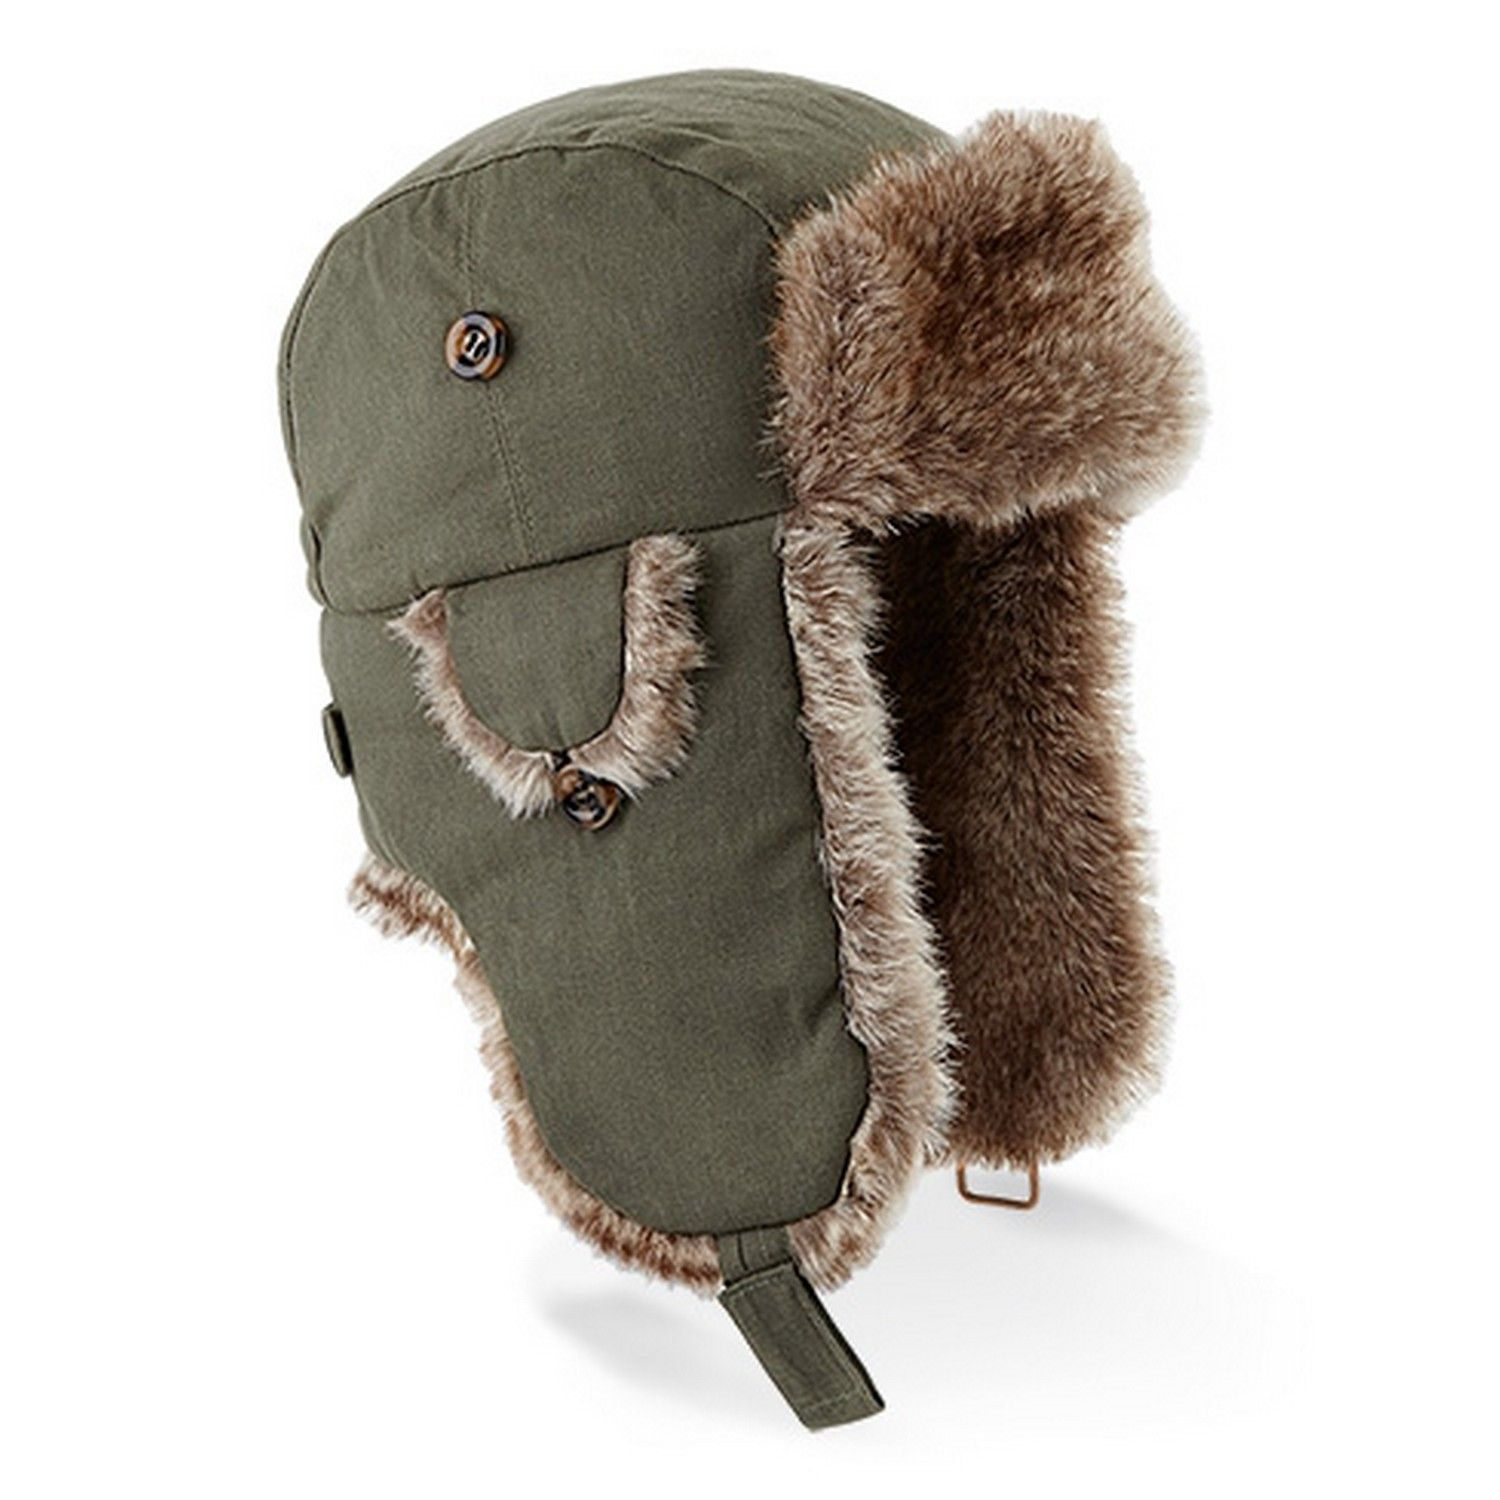 4e4bd381ae5 Beechfield Urban Winter Trapper Hat With Faux Fur Trim || With ear flaps  for extra warmth and a faux fur trim to add a touch of style, this trapper  hat is ...